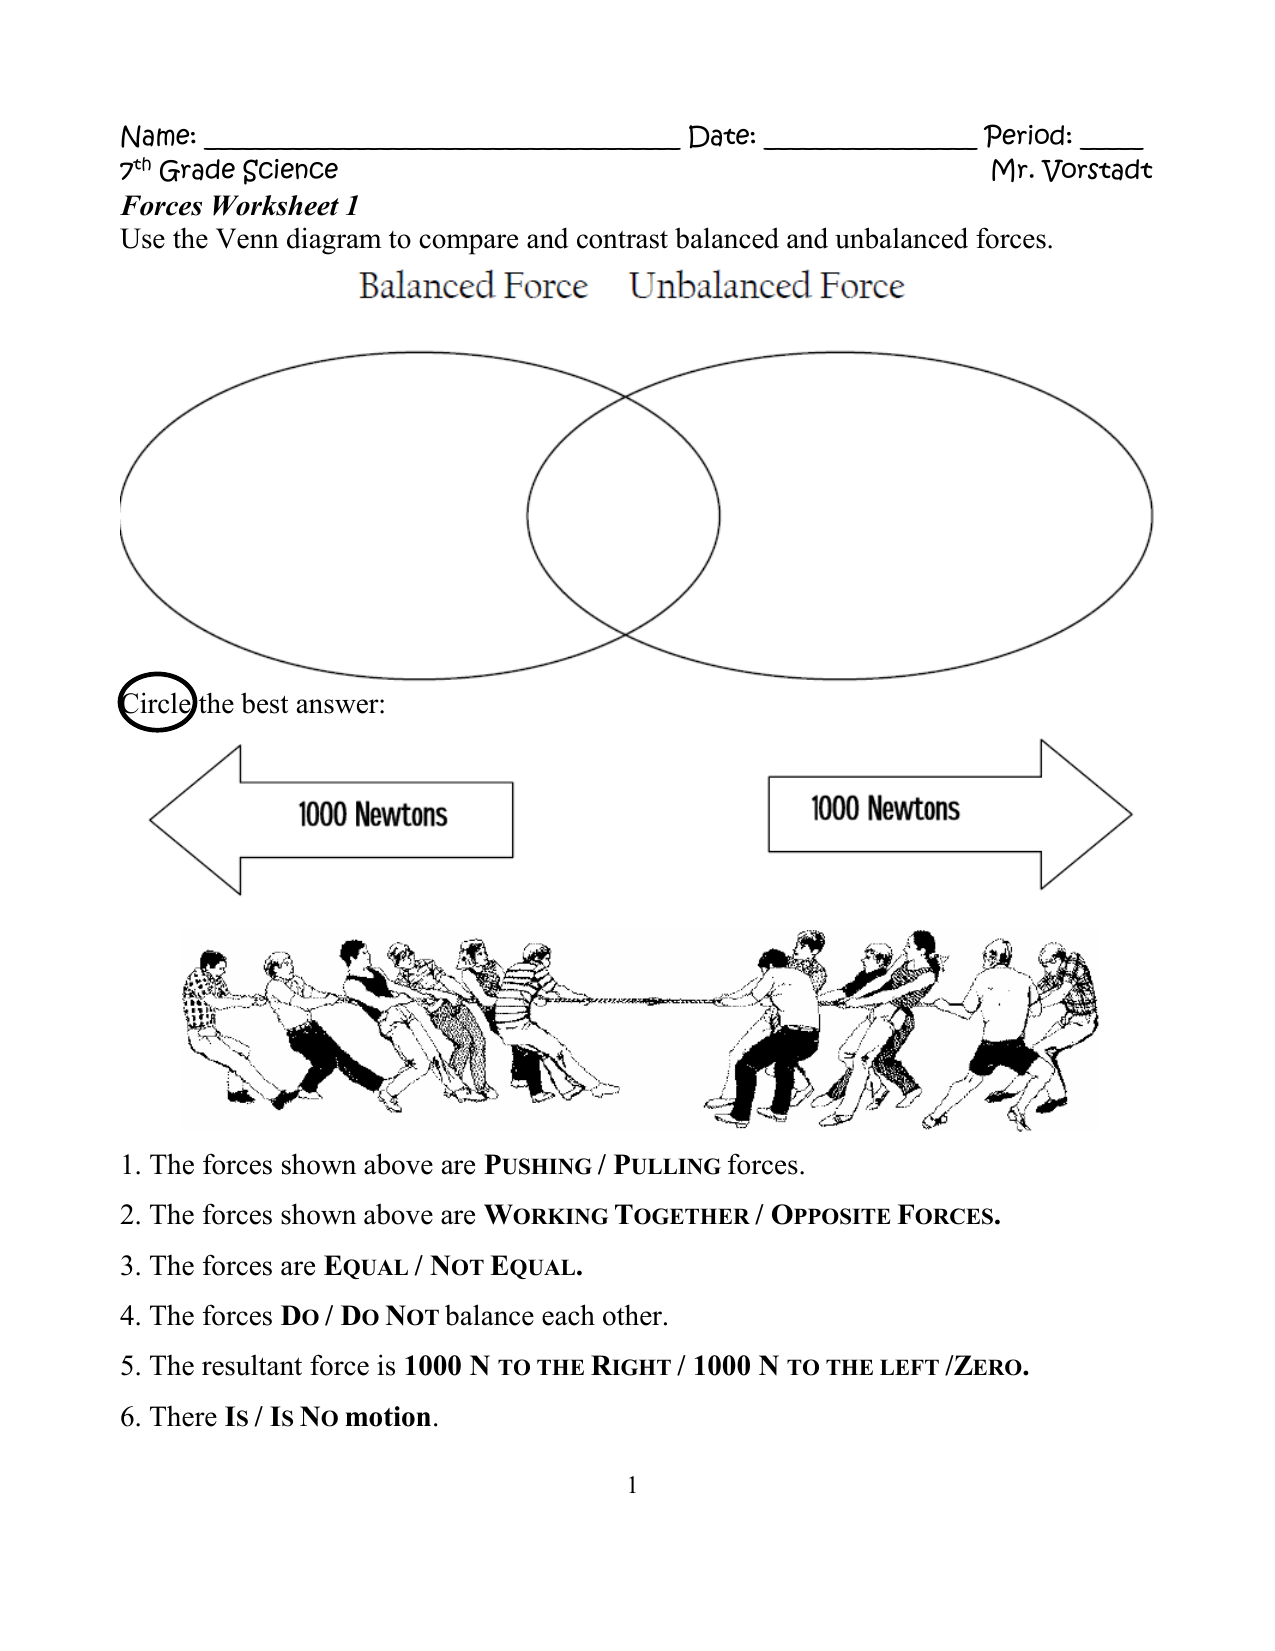 Venn diagram worksheets year 1 fluorescent light symbol online worksheets force diagrams worksheet citysalvageanddesign free 010461457 1 063f13ce457d70cda7f870e8ff052385 force diagrams worksheet venn diagram worksheets pooptronica Image collections